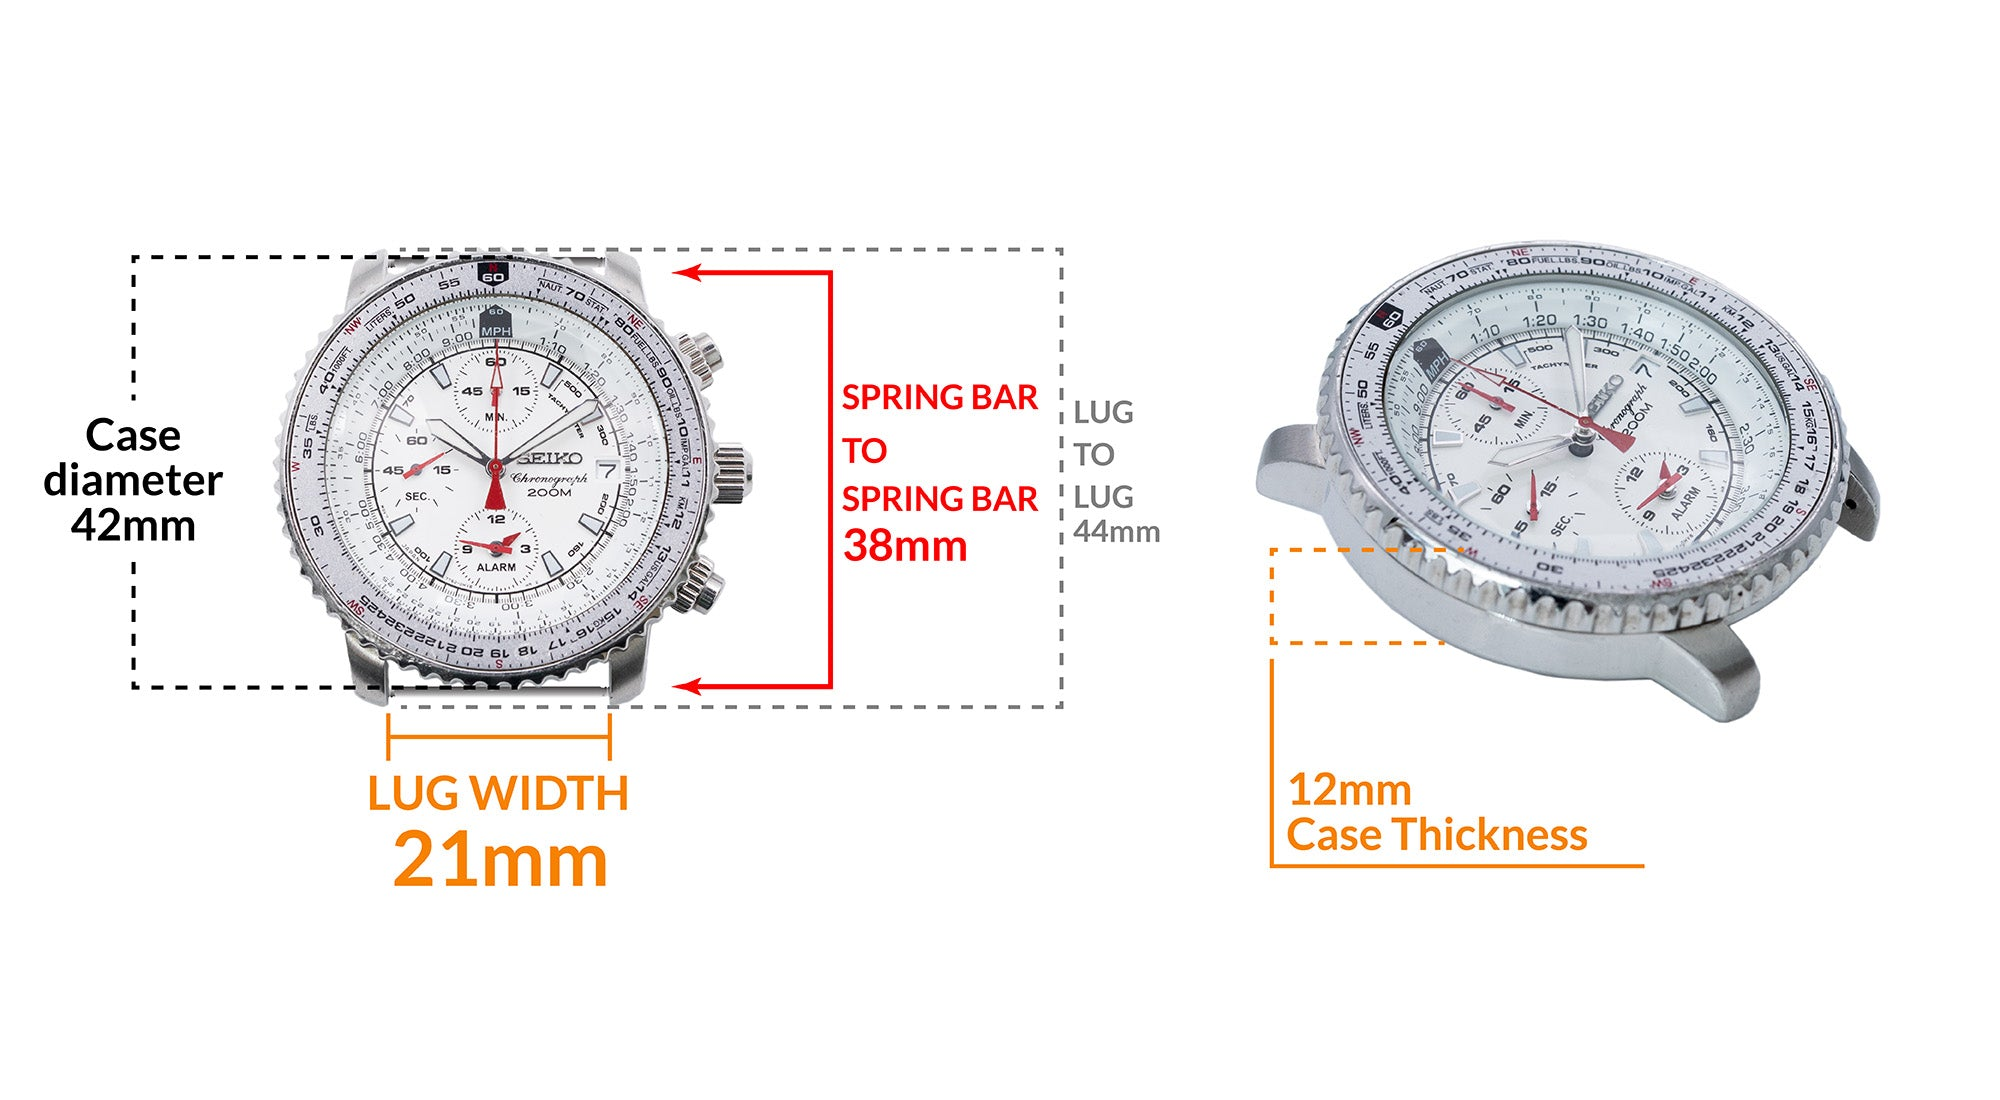 Seiko Pilot Flightmaster- Details watch case measurement and dimensions